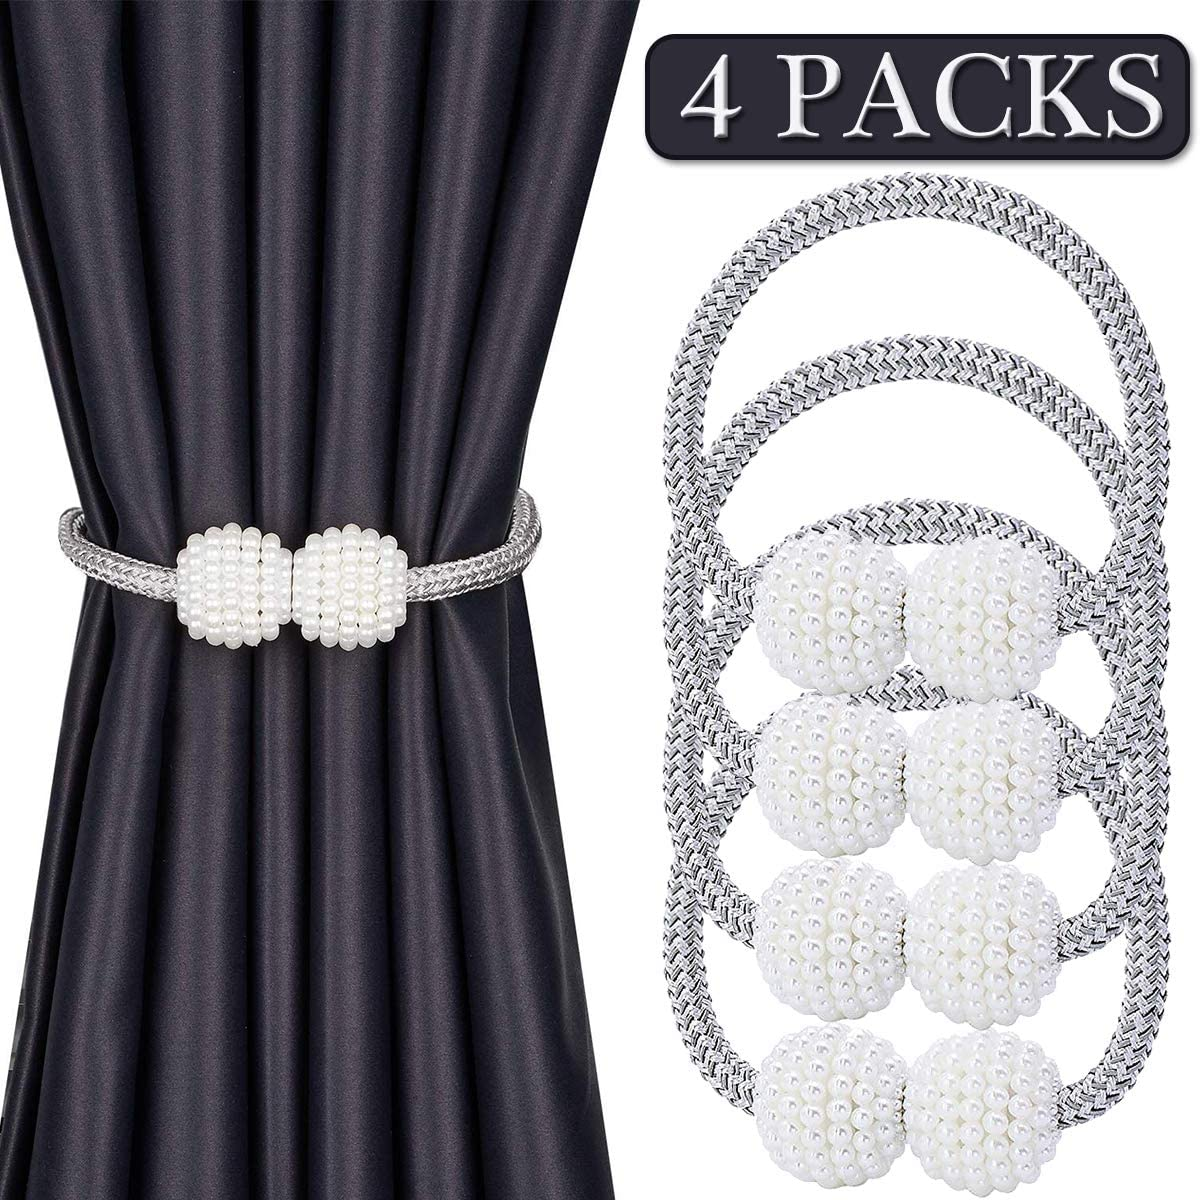 4PCS Curtain Holdbacks Rope Tie Backs Tassel Tiebacks Beaded Ball Decor Silver